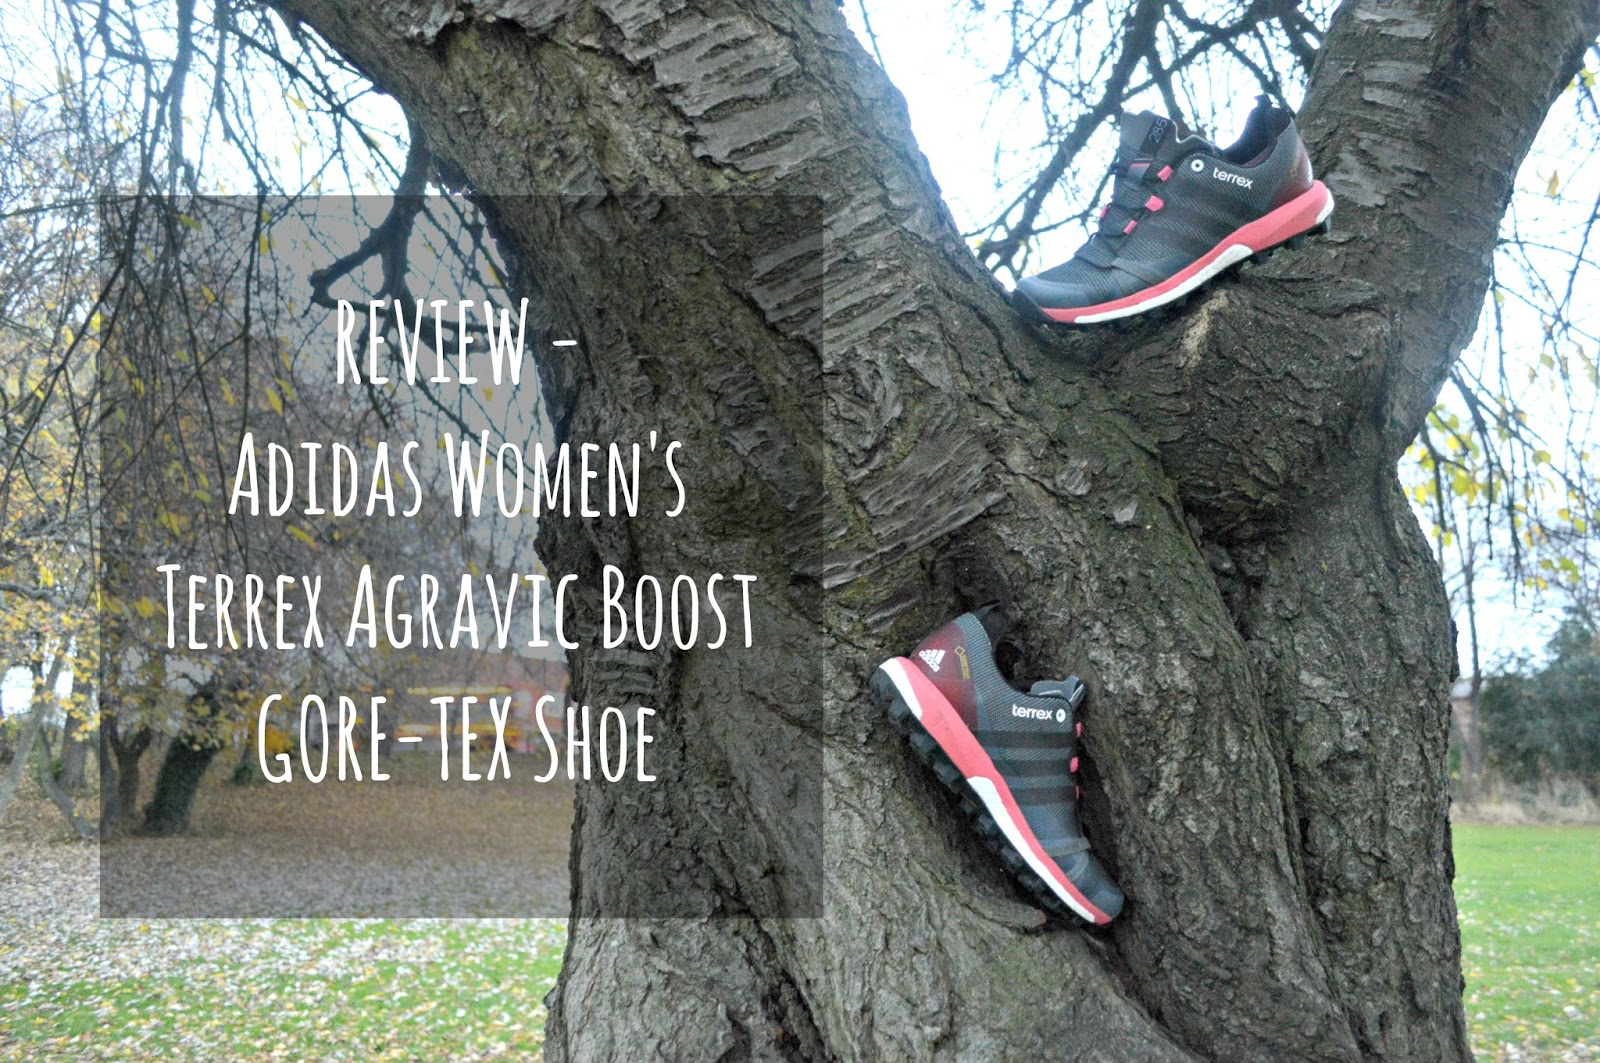 Adidas Women's Terrex Agravic Boost GORE-TEX Shoe - Review